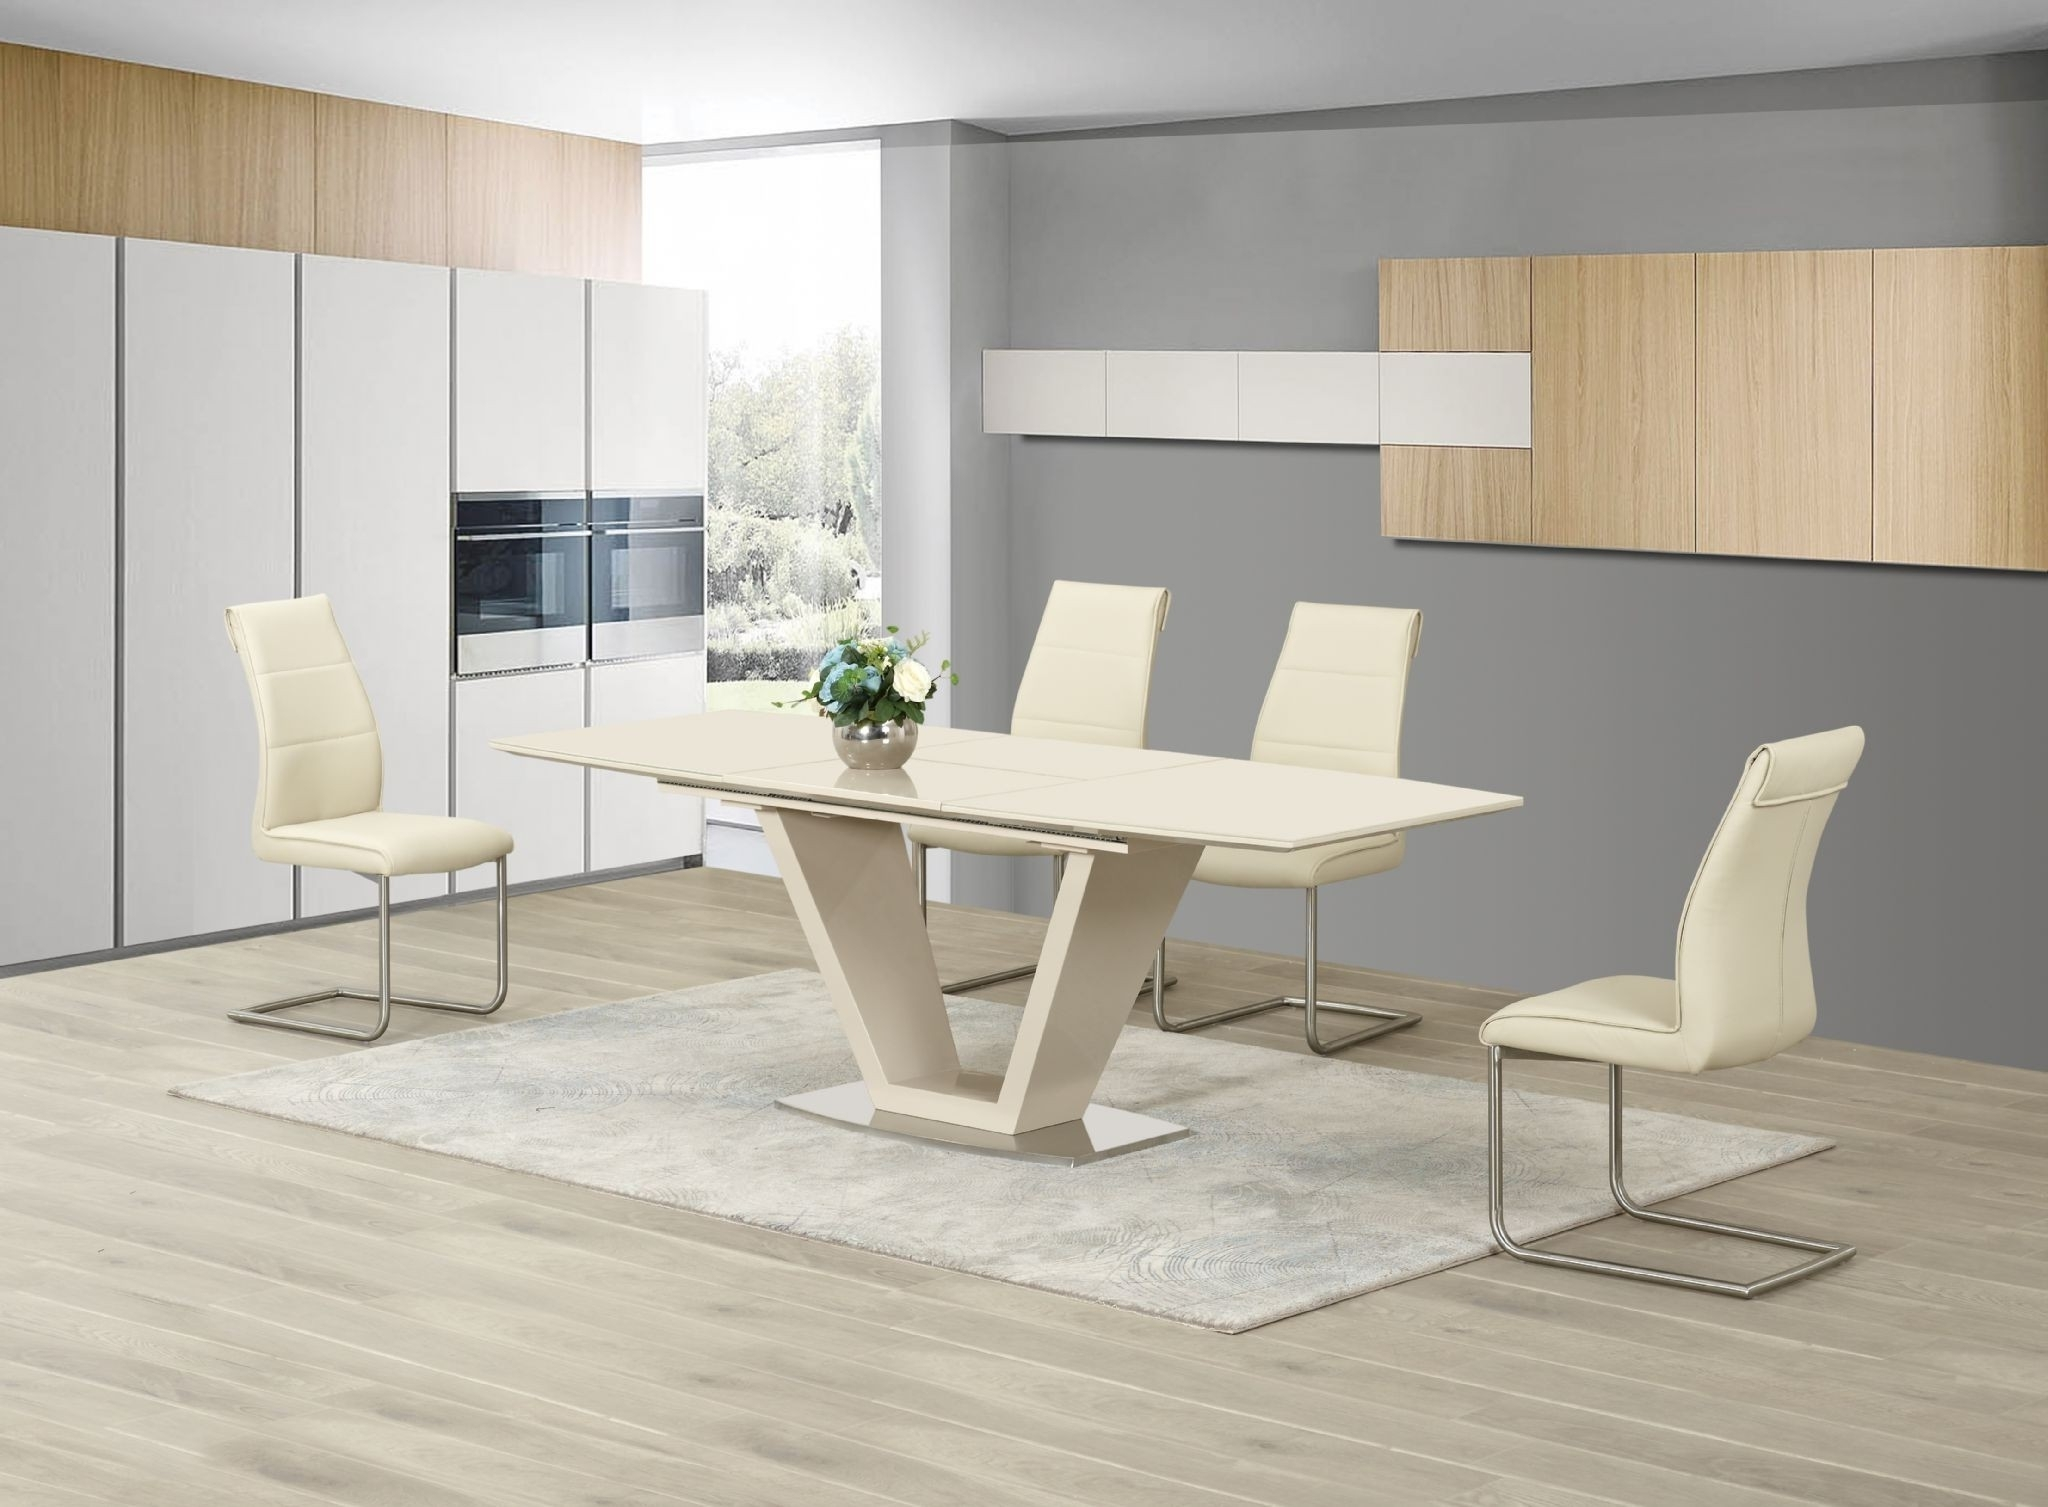 Large White Gloss Dining Tables With Most Recent Floris Cream Gloss Extending Dining Table 160 220Cm (View 16 of 25)